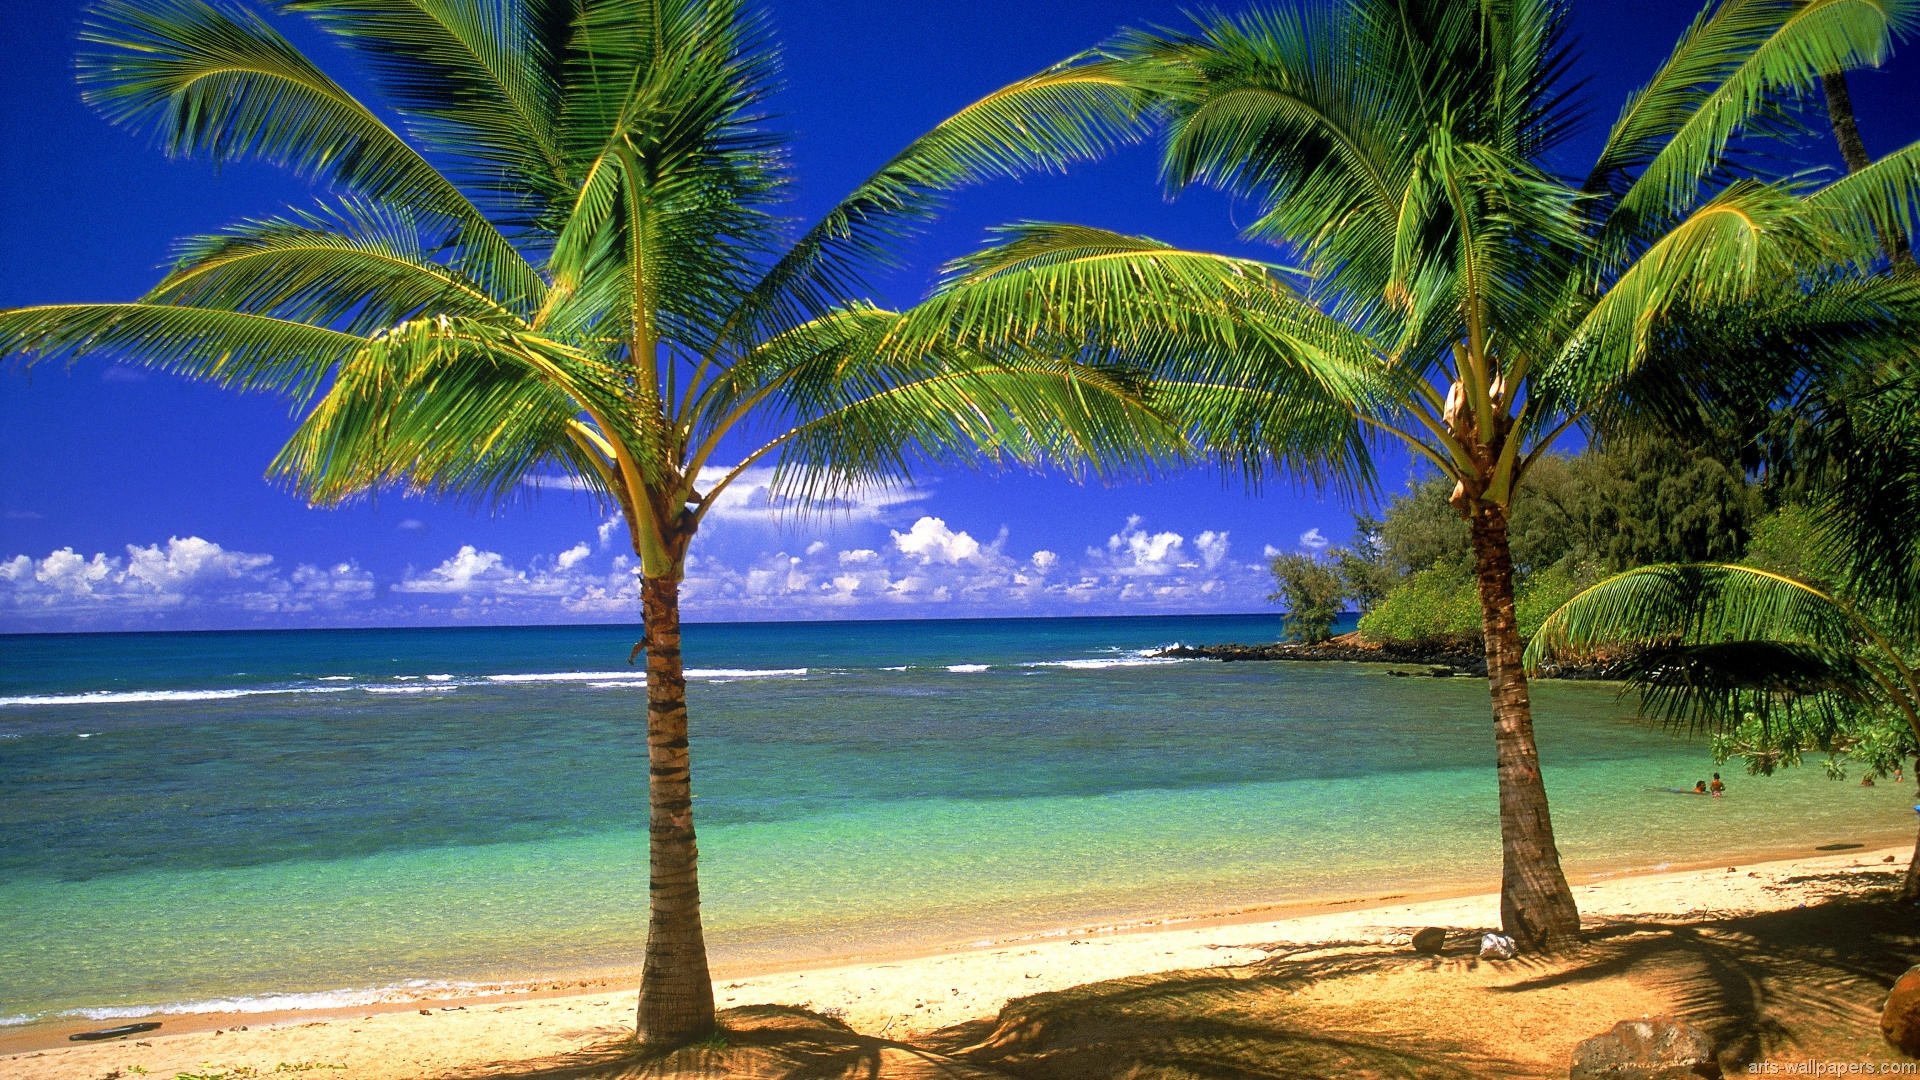 Tropical Paradise Wallpapers Hawaii Maldives Tahiti Islands Beach 1920x1080